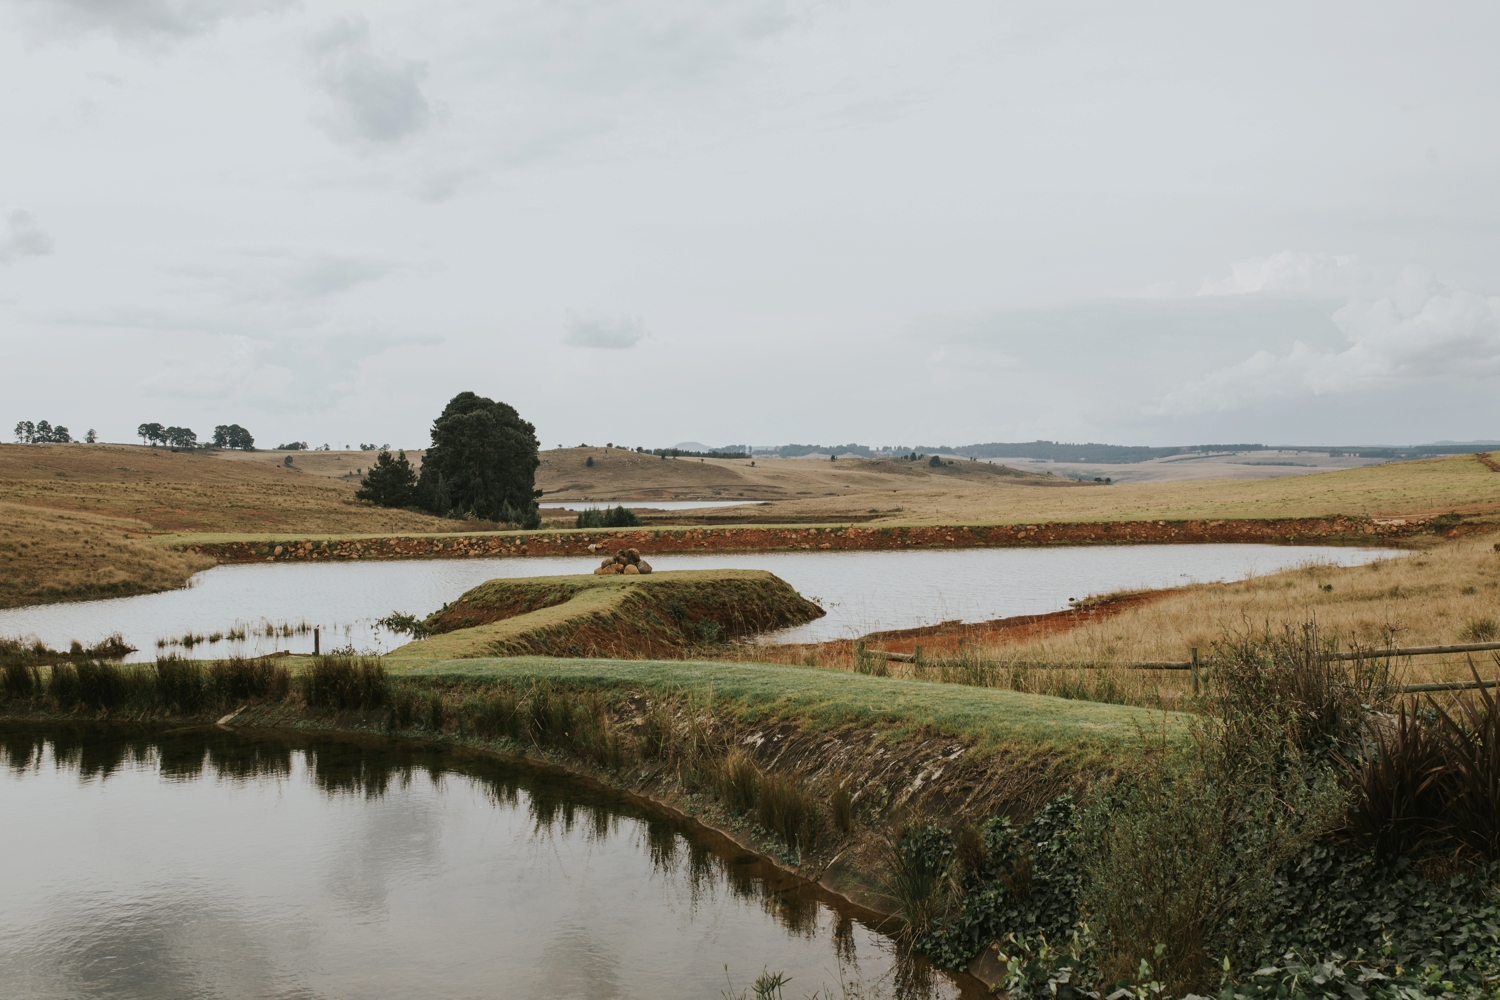 View of dam at Netherwood Wedding Venue in the Natal Midlands